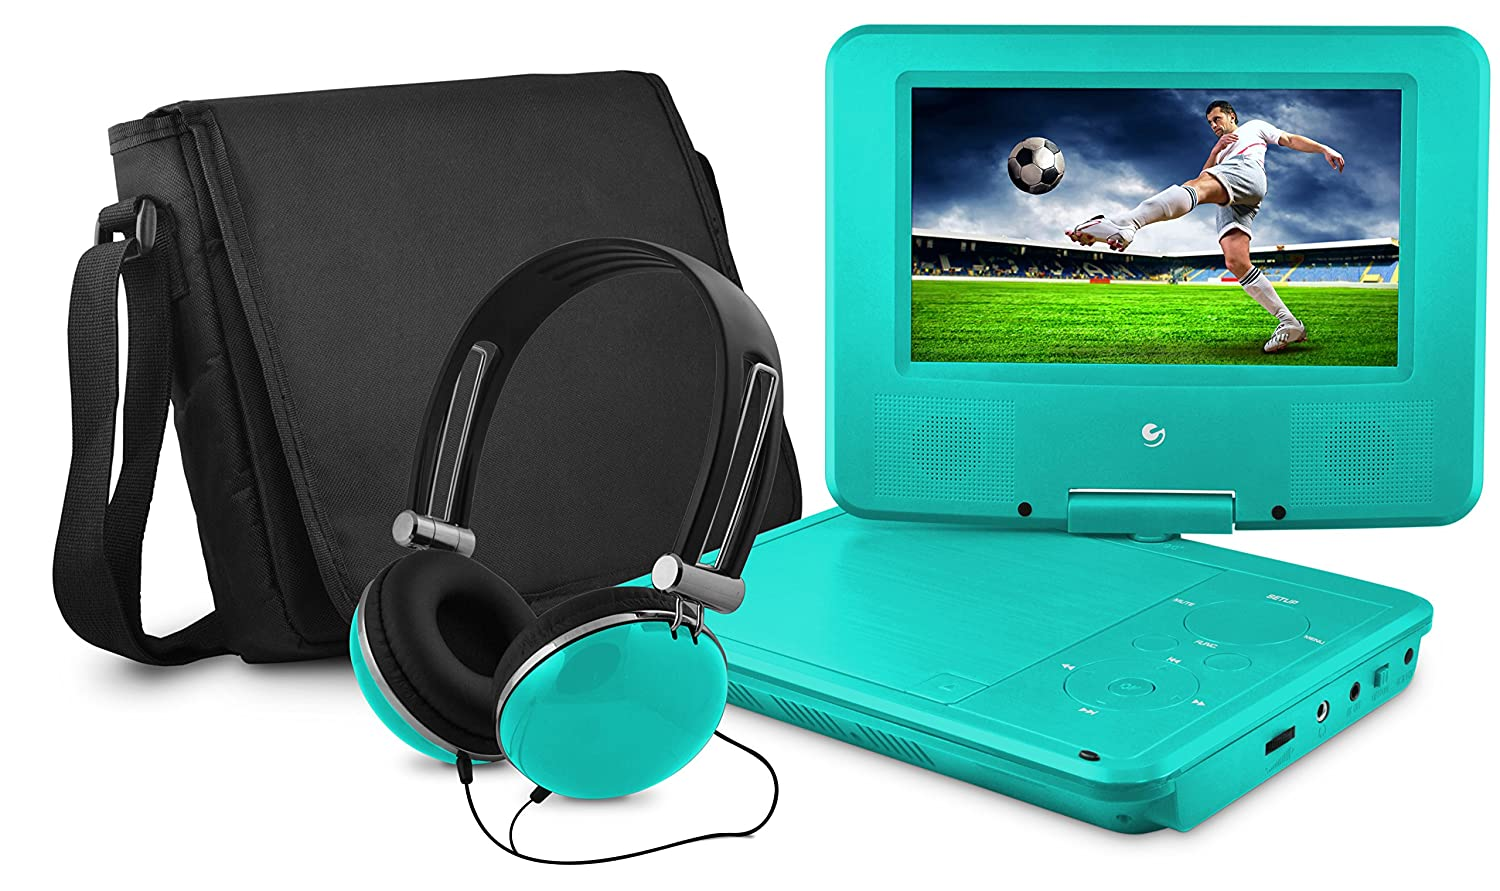 ematic portable dvd player reviews